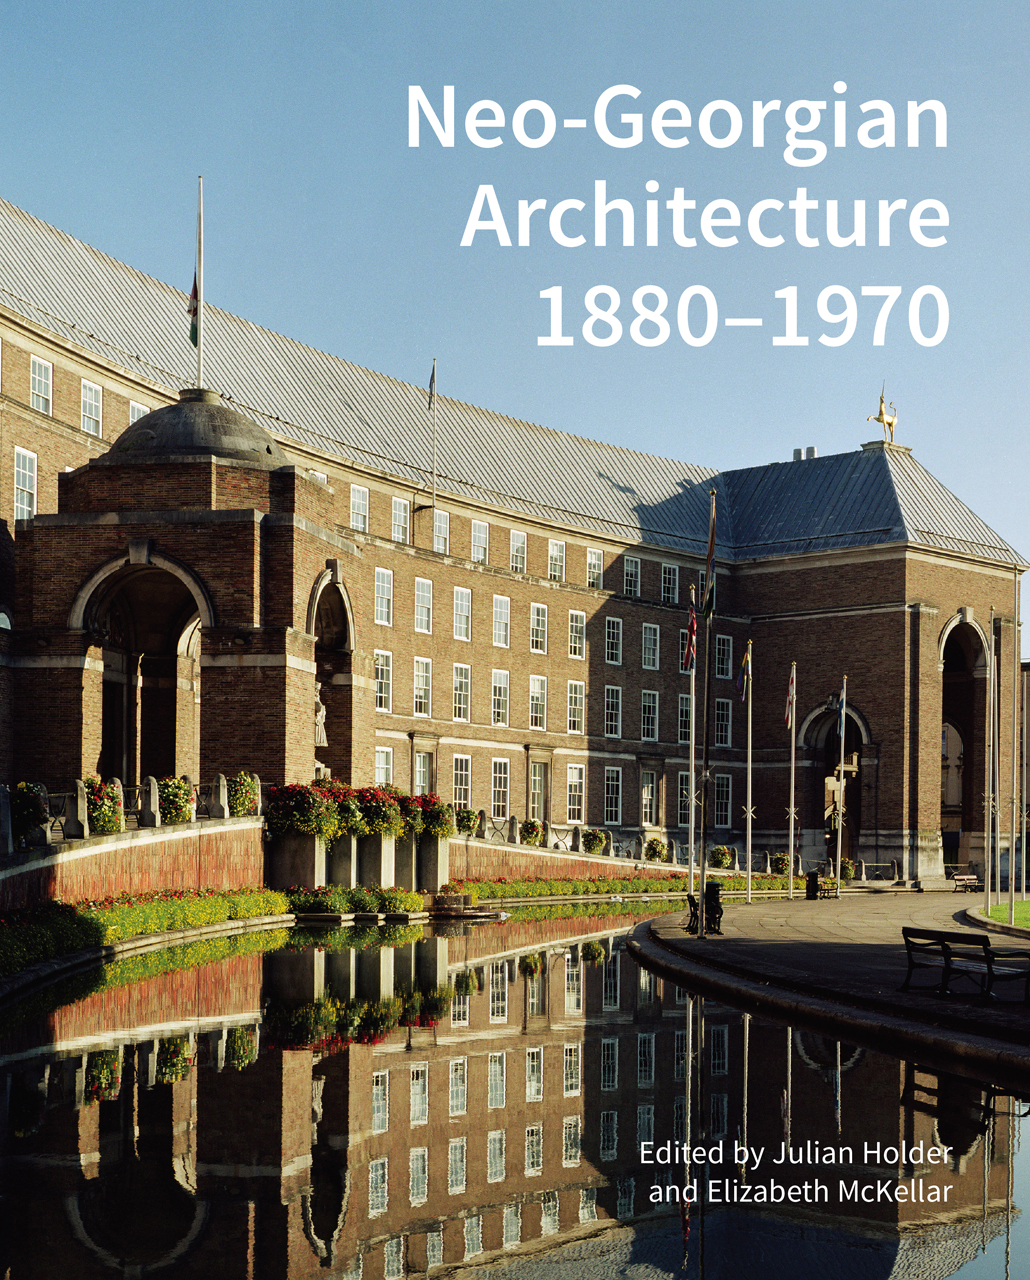 Neo-Georgian Architecture 1880-1970, Holder, McKellar